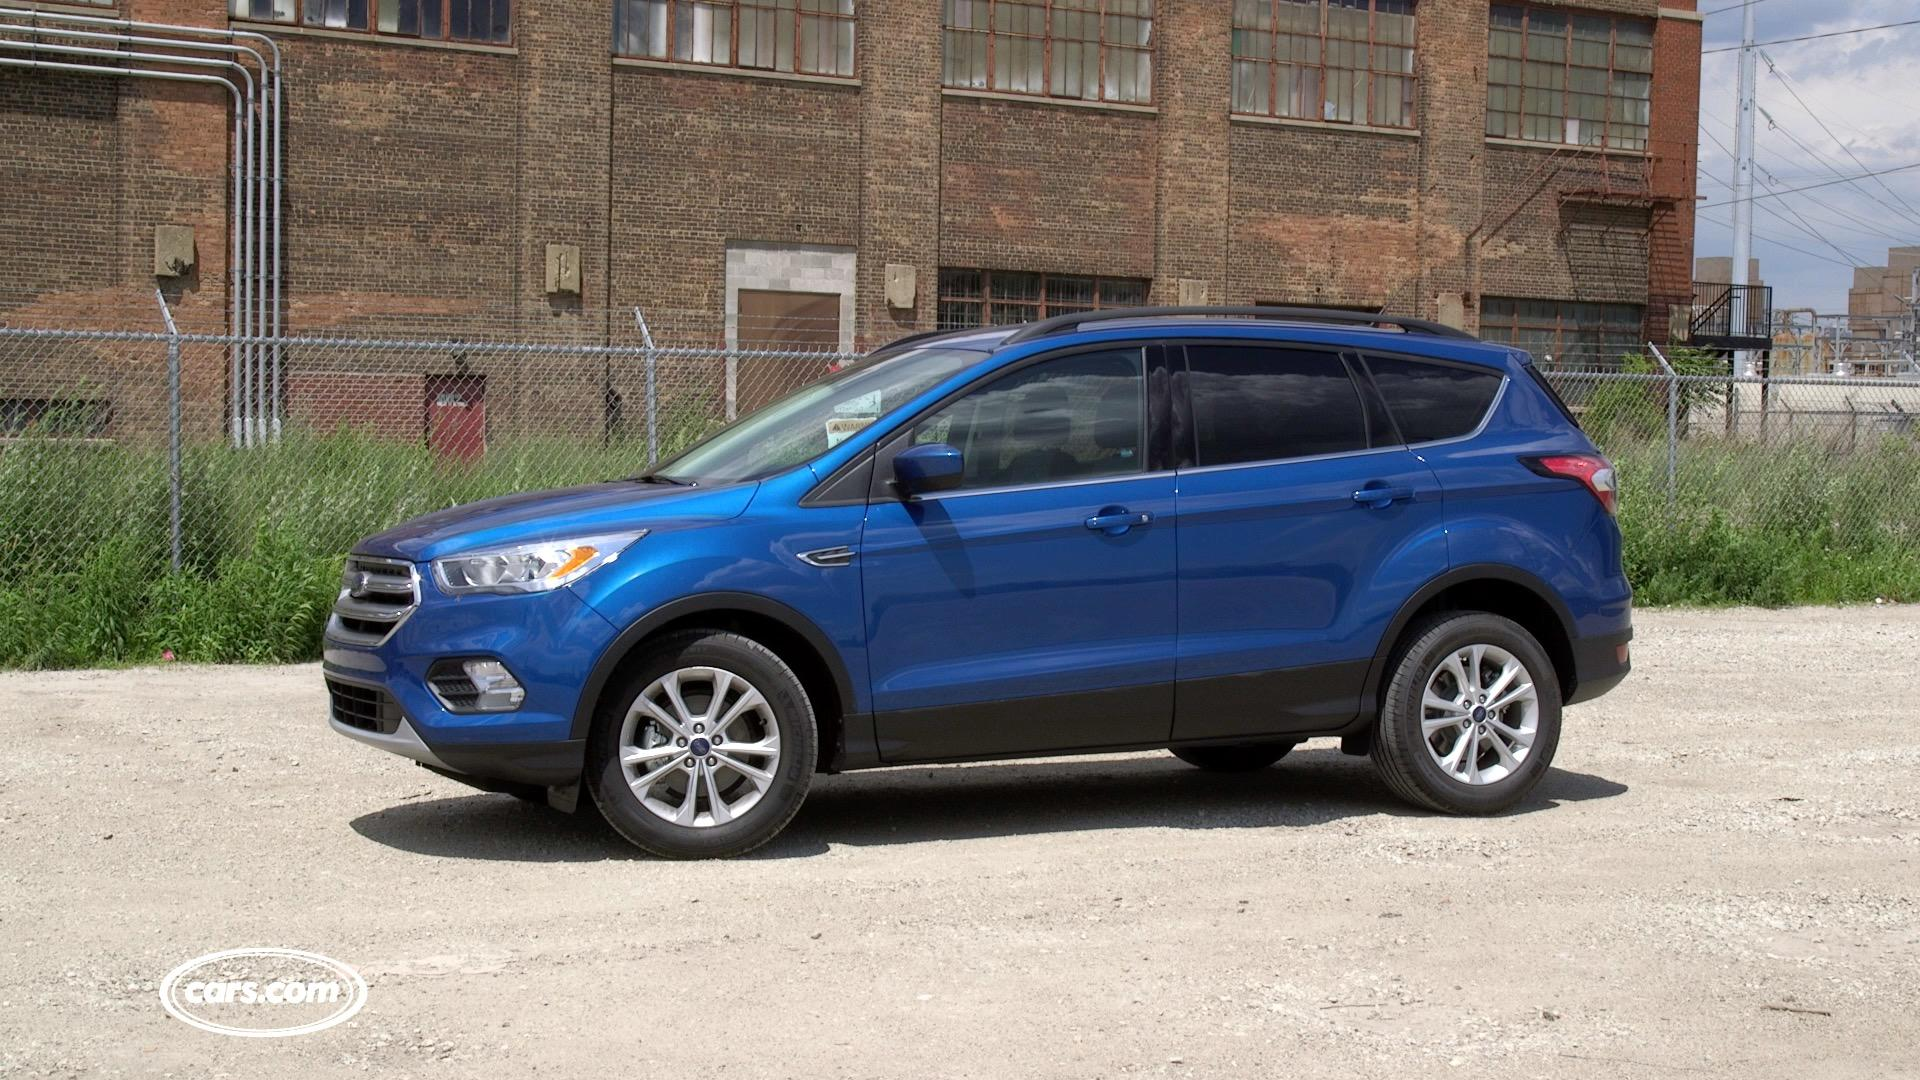 2017 Ford Escape Expert Reviews Specs and s